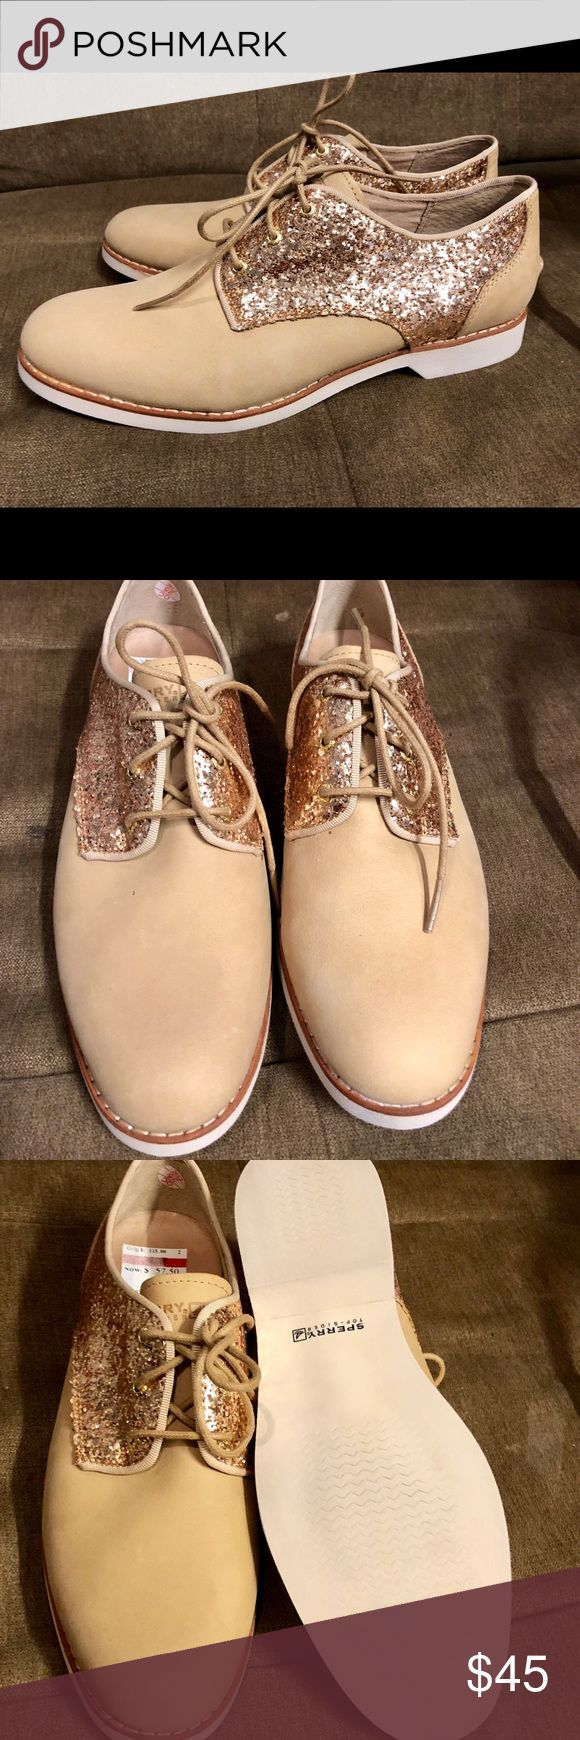 Glitter/tan Sperry oxford Women's gold glitter/tan Sperry Oxford shoes size 8....worn once! Original $115! I got them on sale for $57! Like new! Sperry Top-Sider Shoes Flats & Loafers